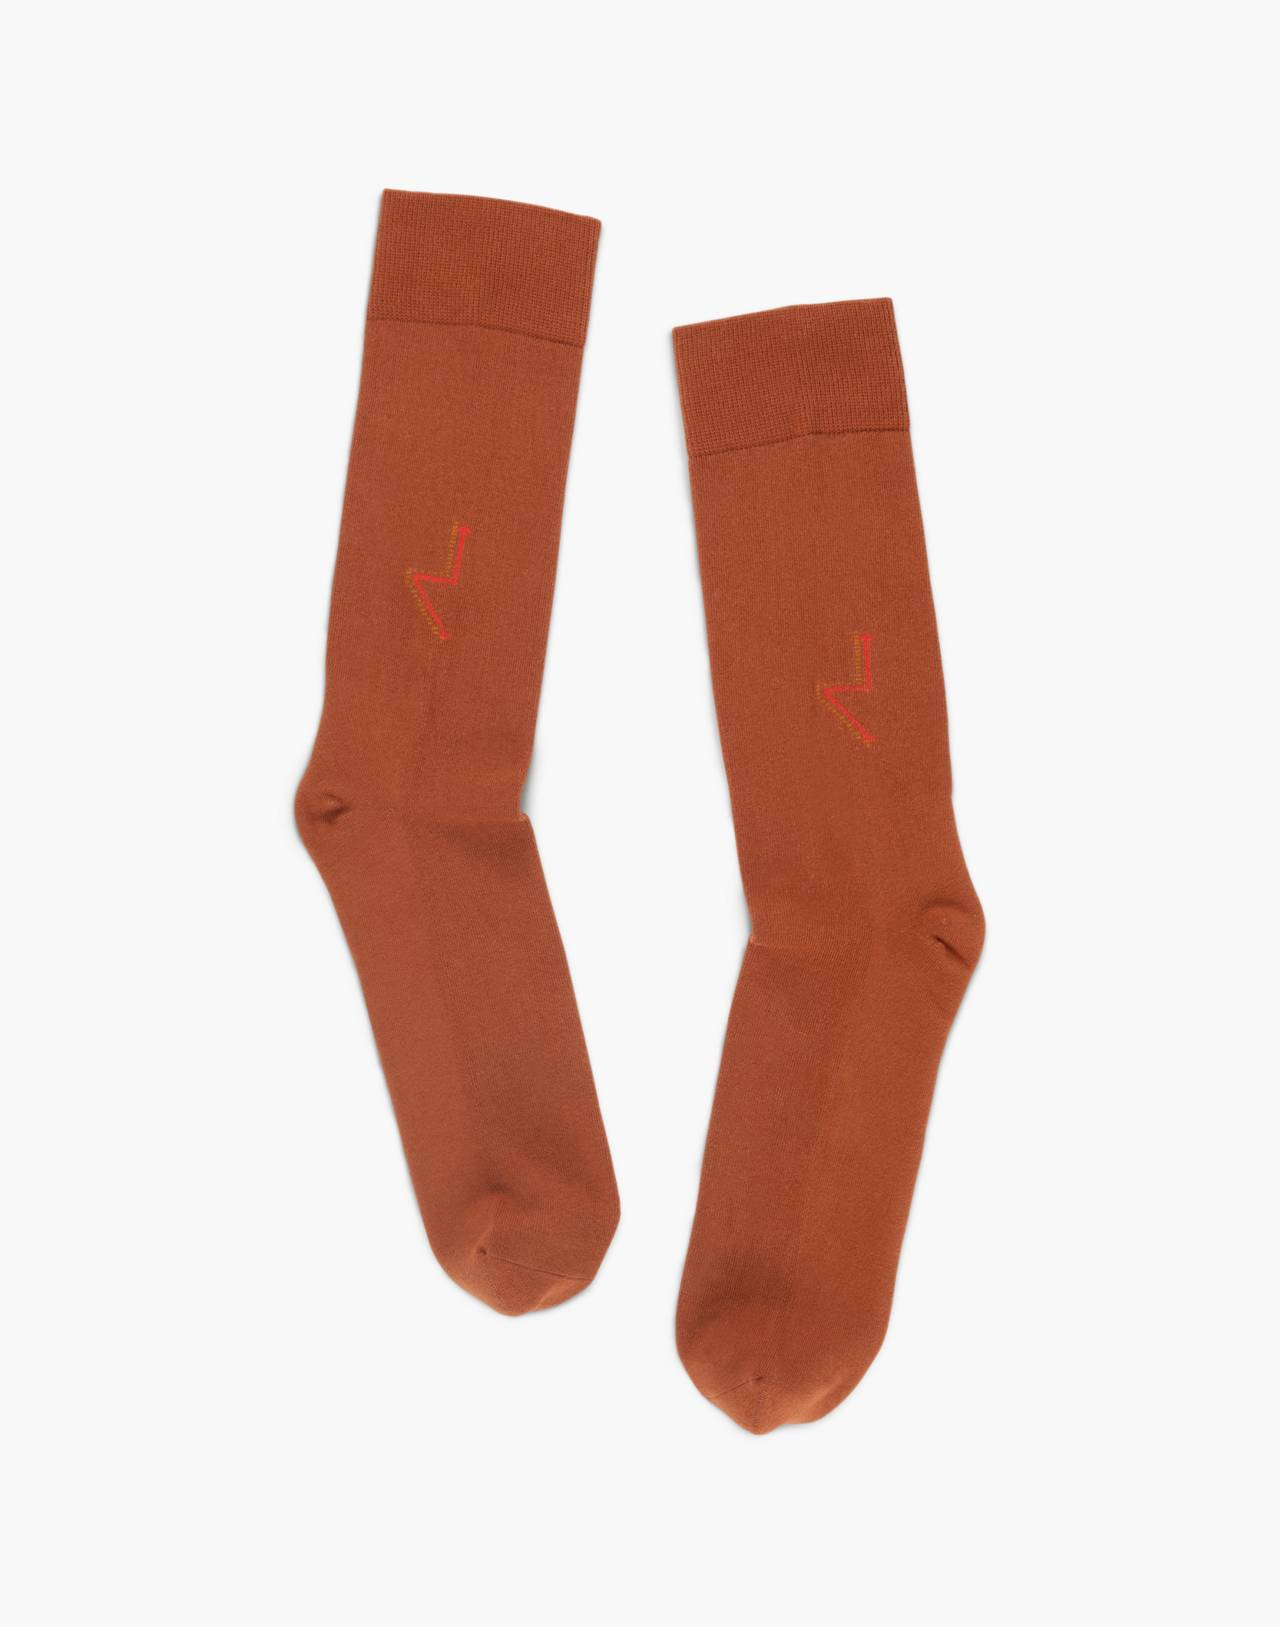 Tailored Union® Men's Vacher Crew Socks in brown image 1